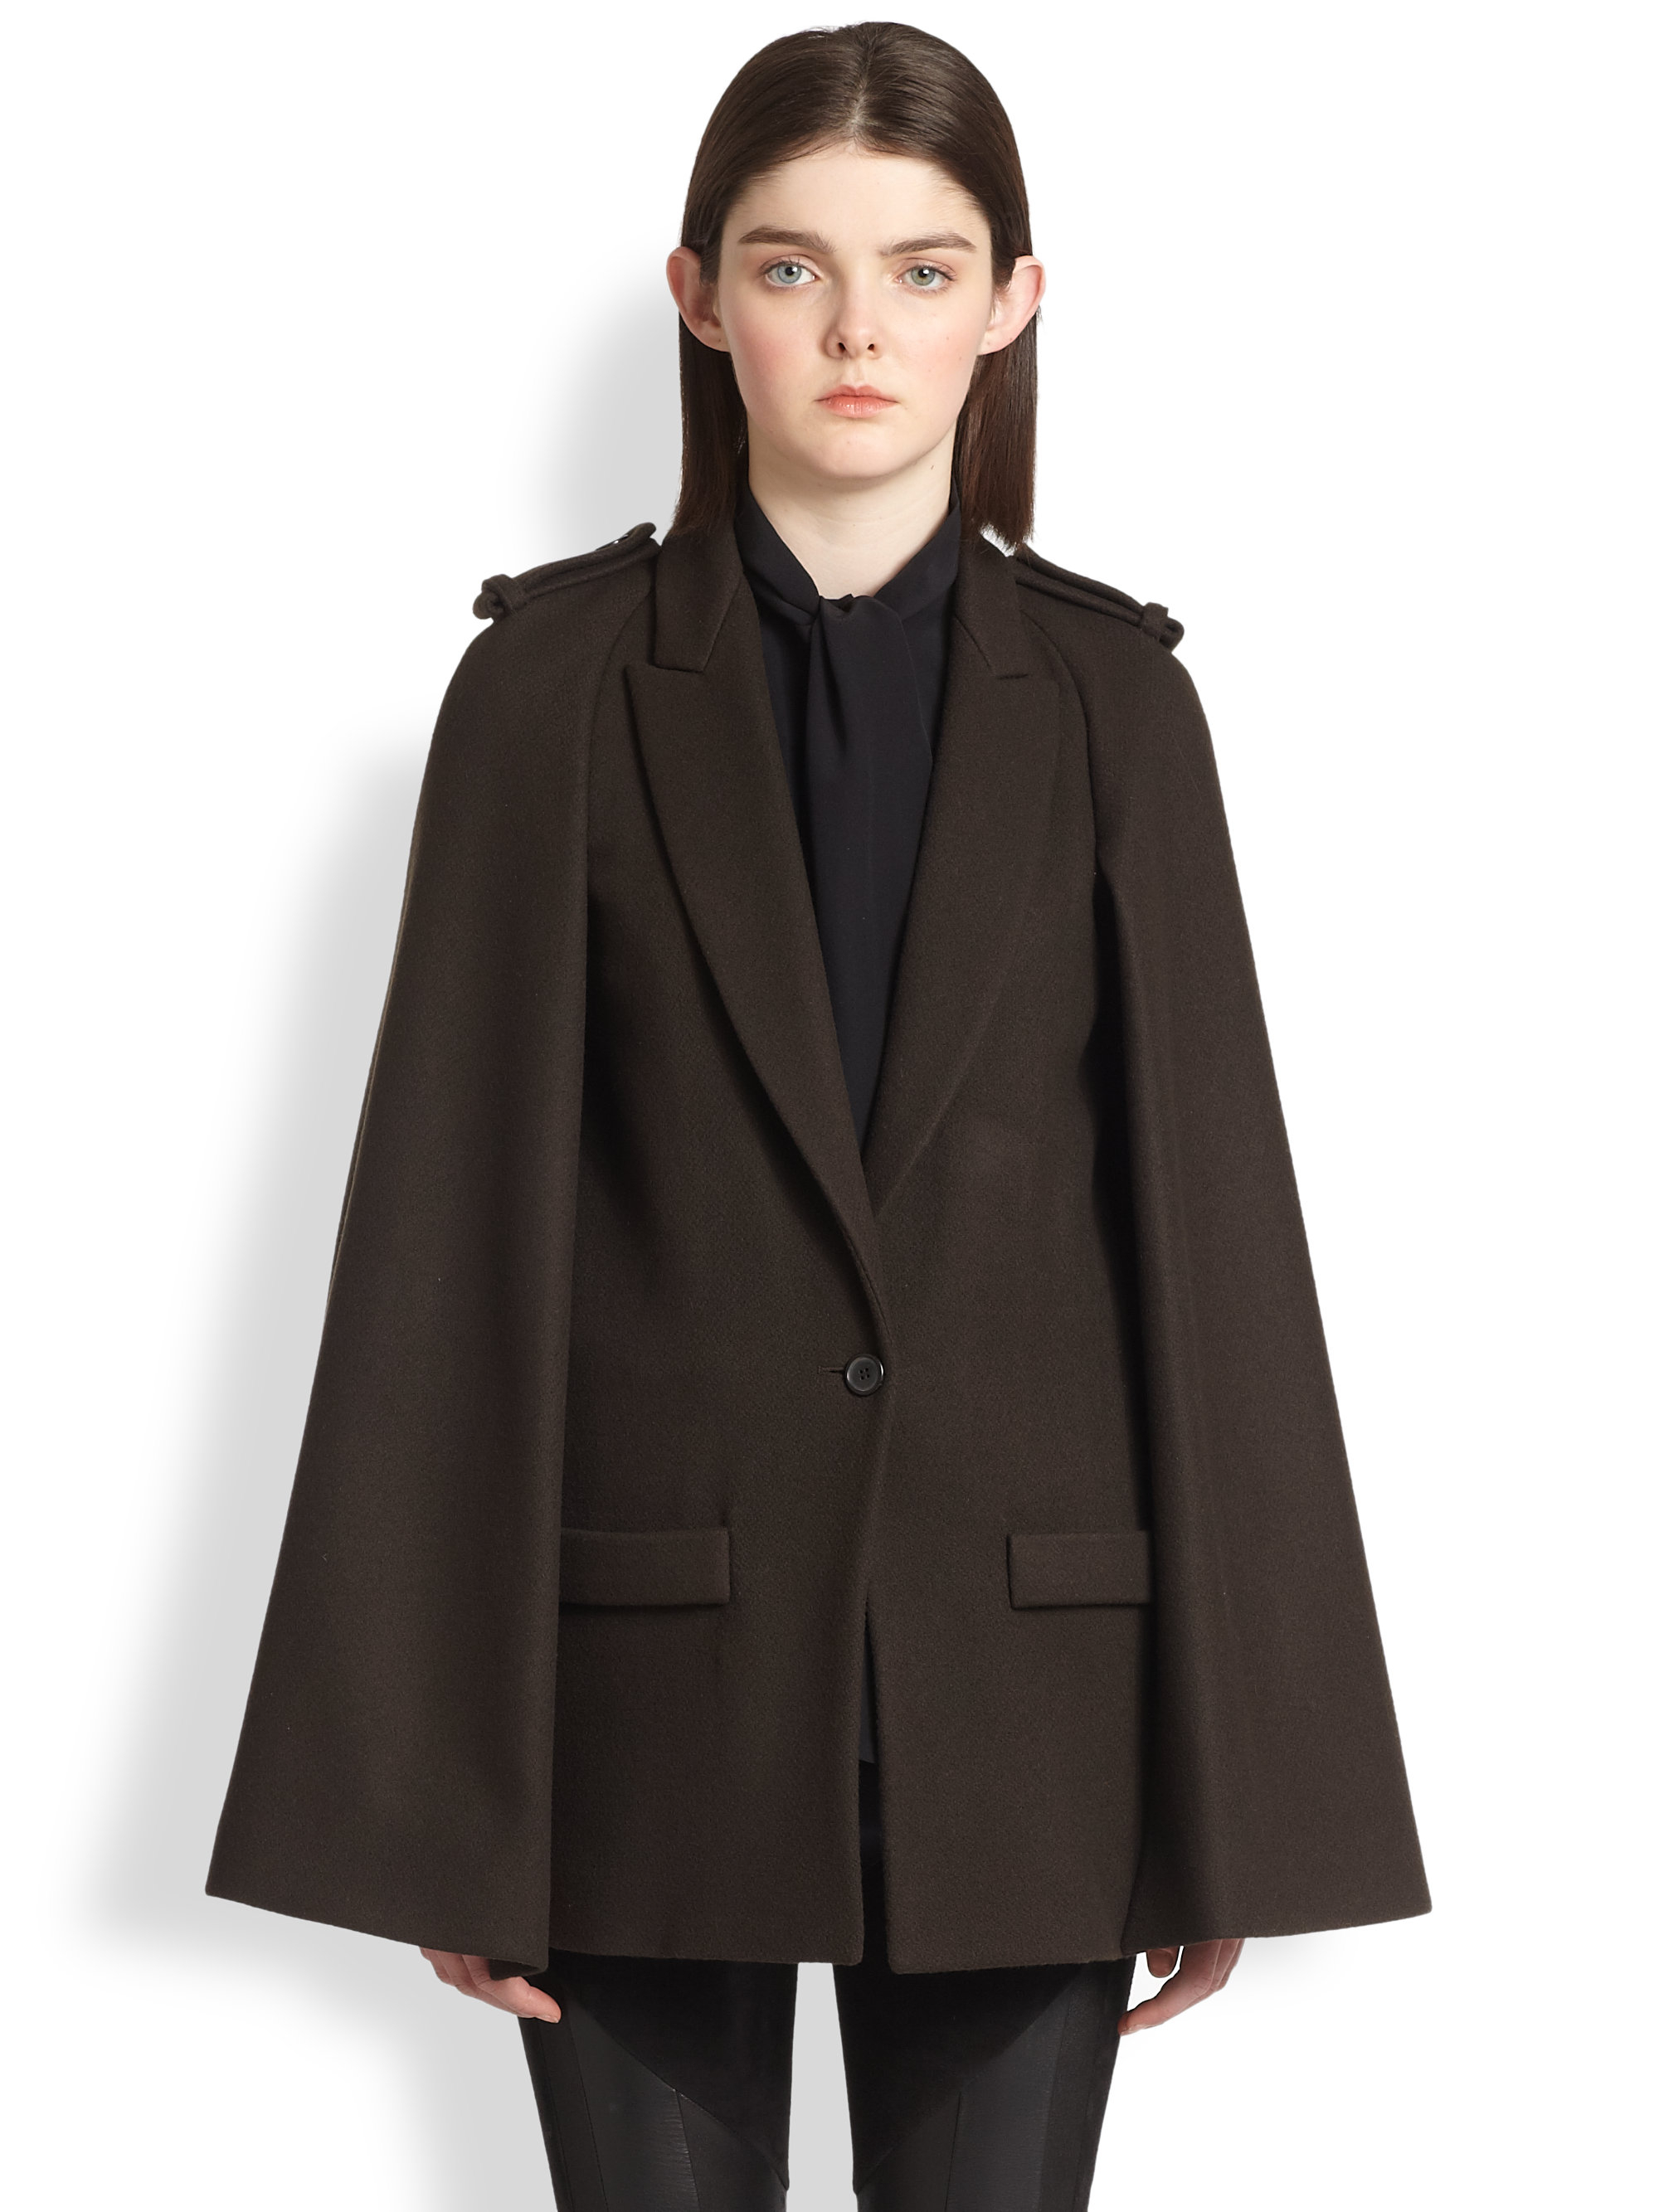 Givenchy Felted Wool Cape Coat in Brown | Lyst